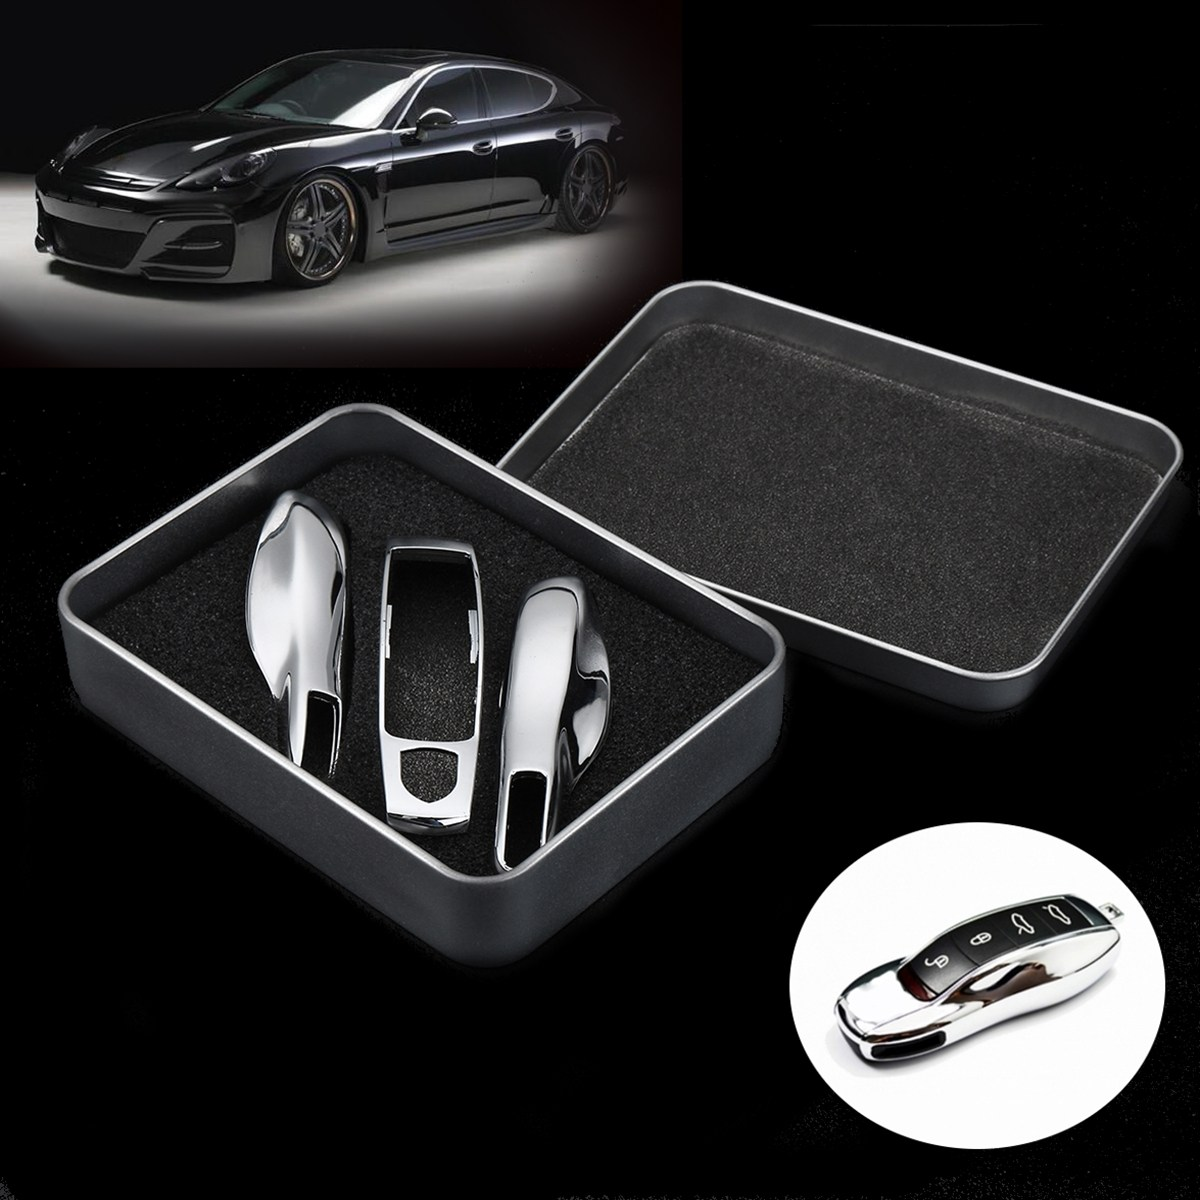 3pcs Chrome Silver Remote Key Case Fob Covers For Porsche/Panamera Macan Cayman 911